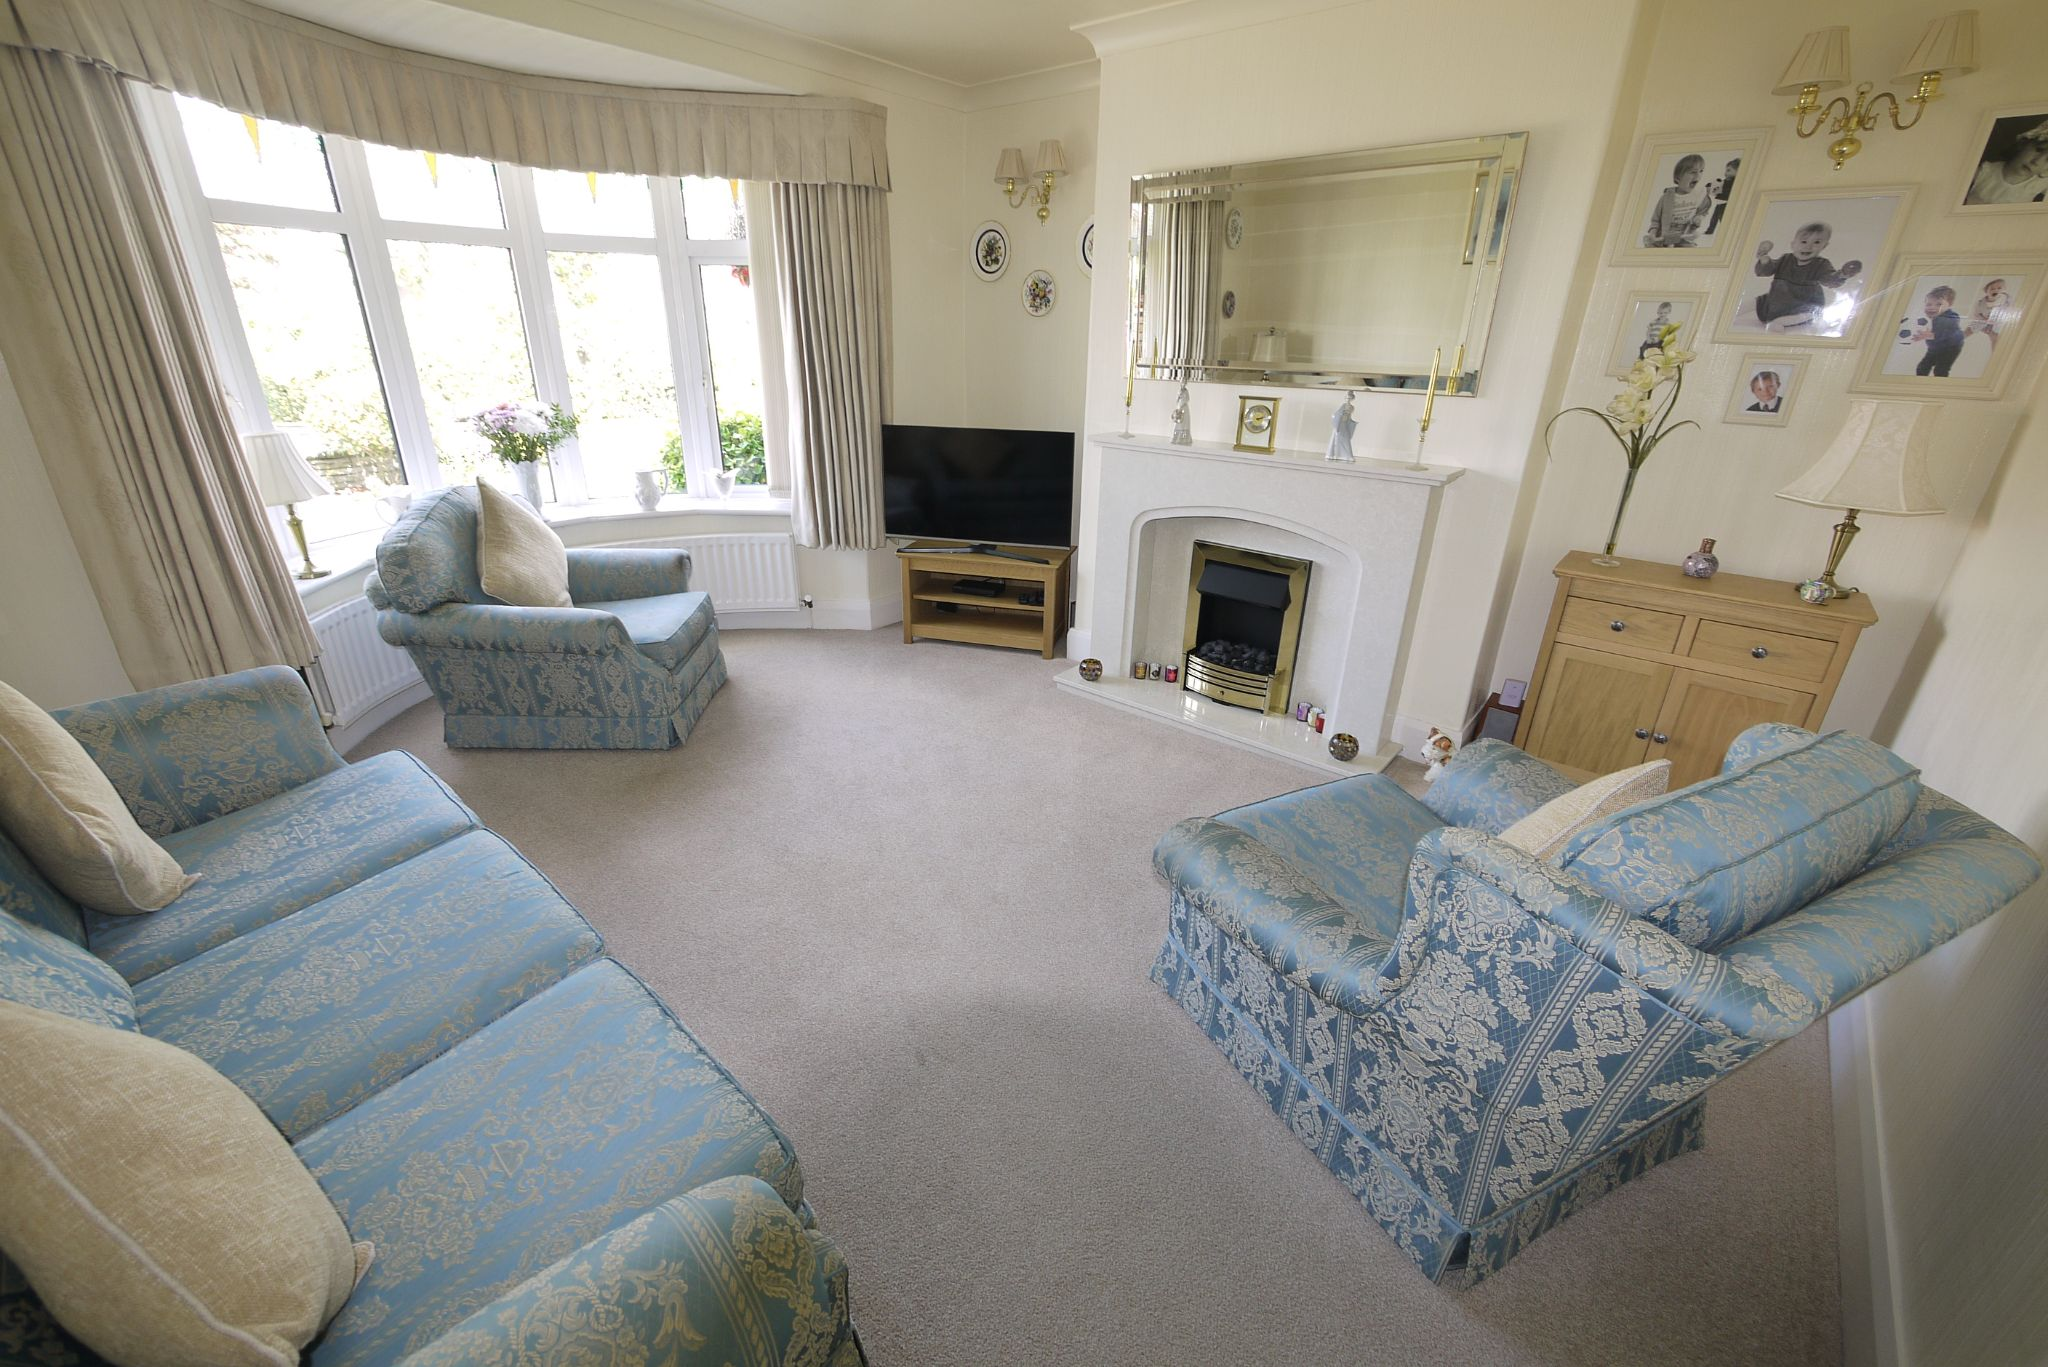 4 bedroom semi-detached house SSTC in Brighouse - Photograph 2.